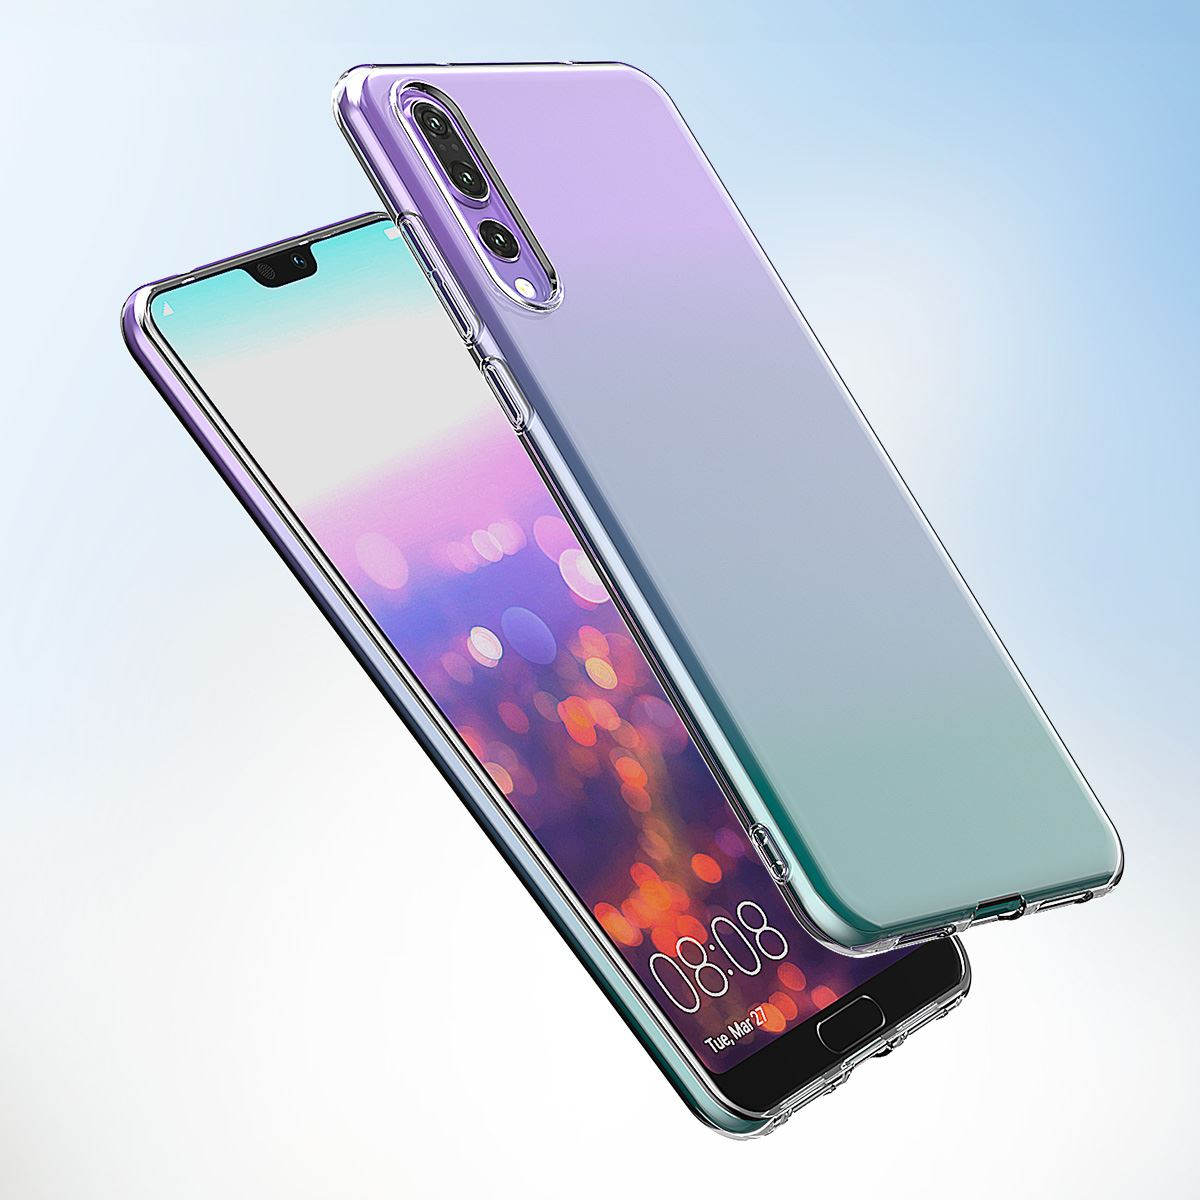 Shockproof-Silicone-Protective-Clear-Gel-Cover-Case-For-Huawei-P20-Pro-P-Smart thumbnail 69